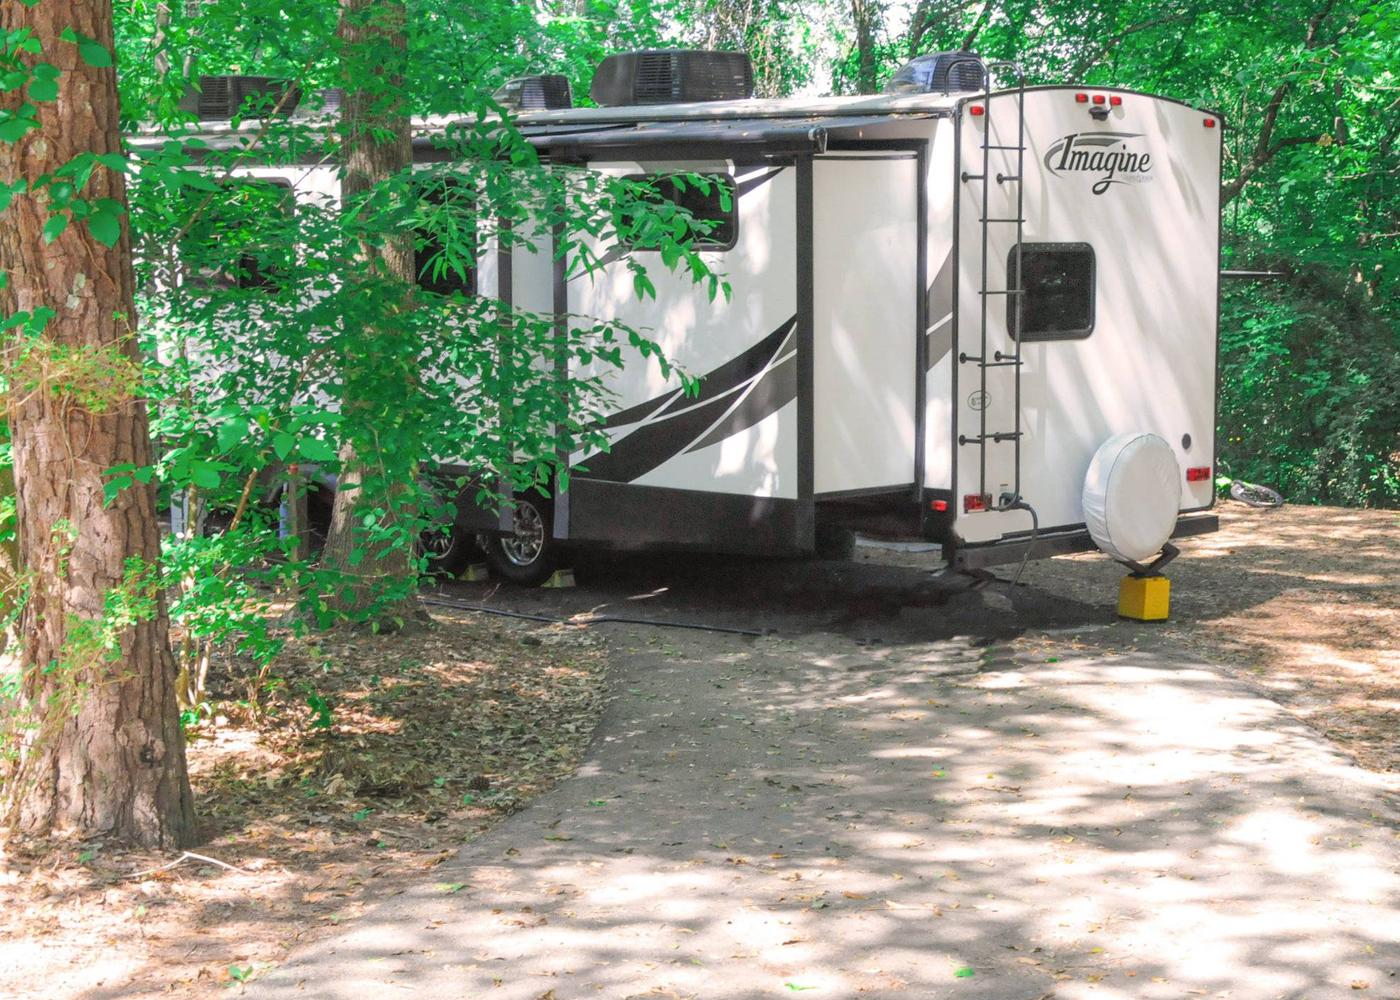 Pull-thru entrance, utilities clearance.Victoria Campground, campsite 47.